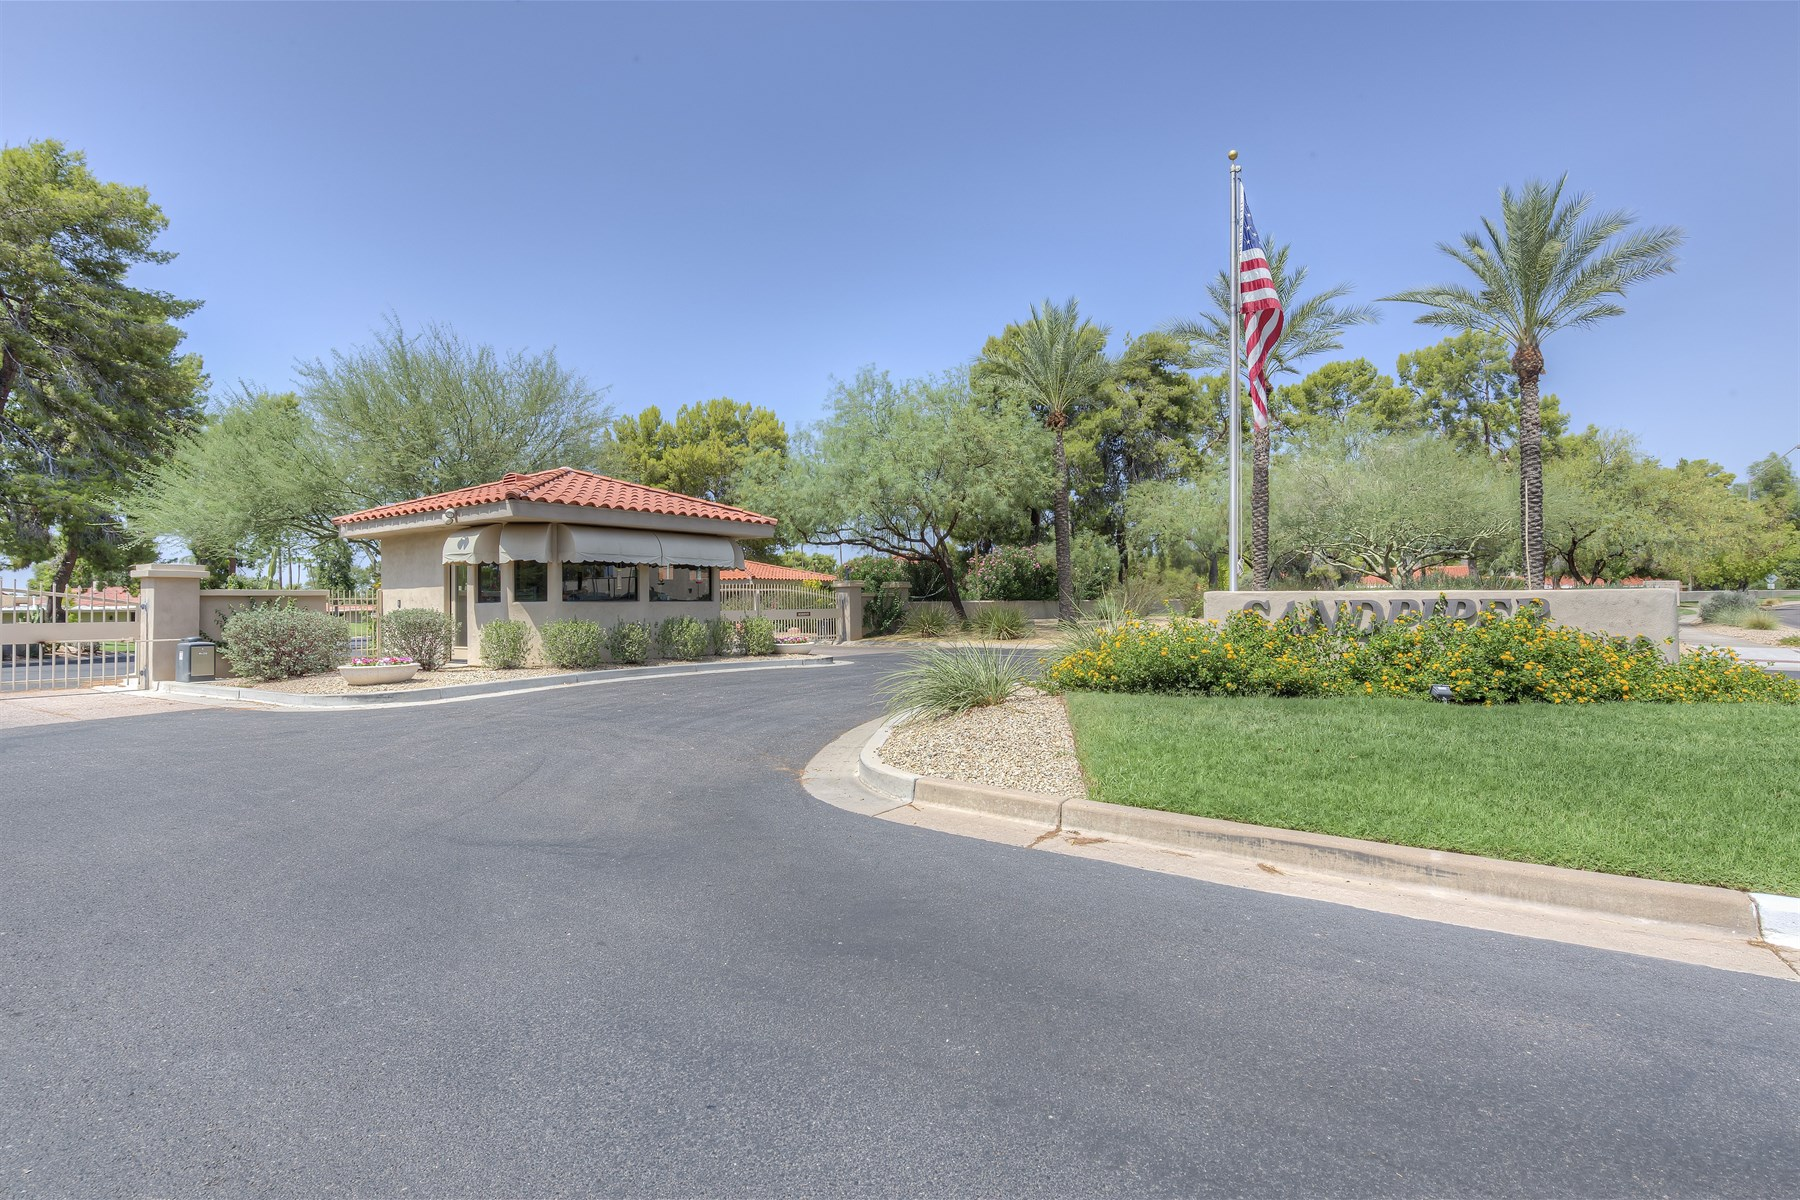 타운하우스 용 매매 에 Guard-gated Sandpiper in McCormick Ranch. 7731 E Bowie RD Scottsdale, 아리조나 85258 미국